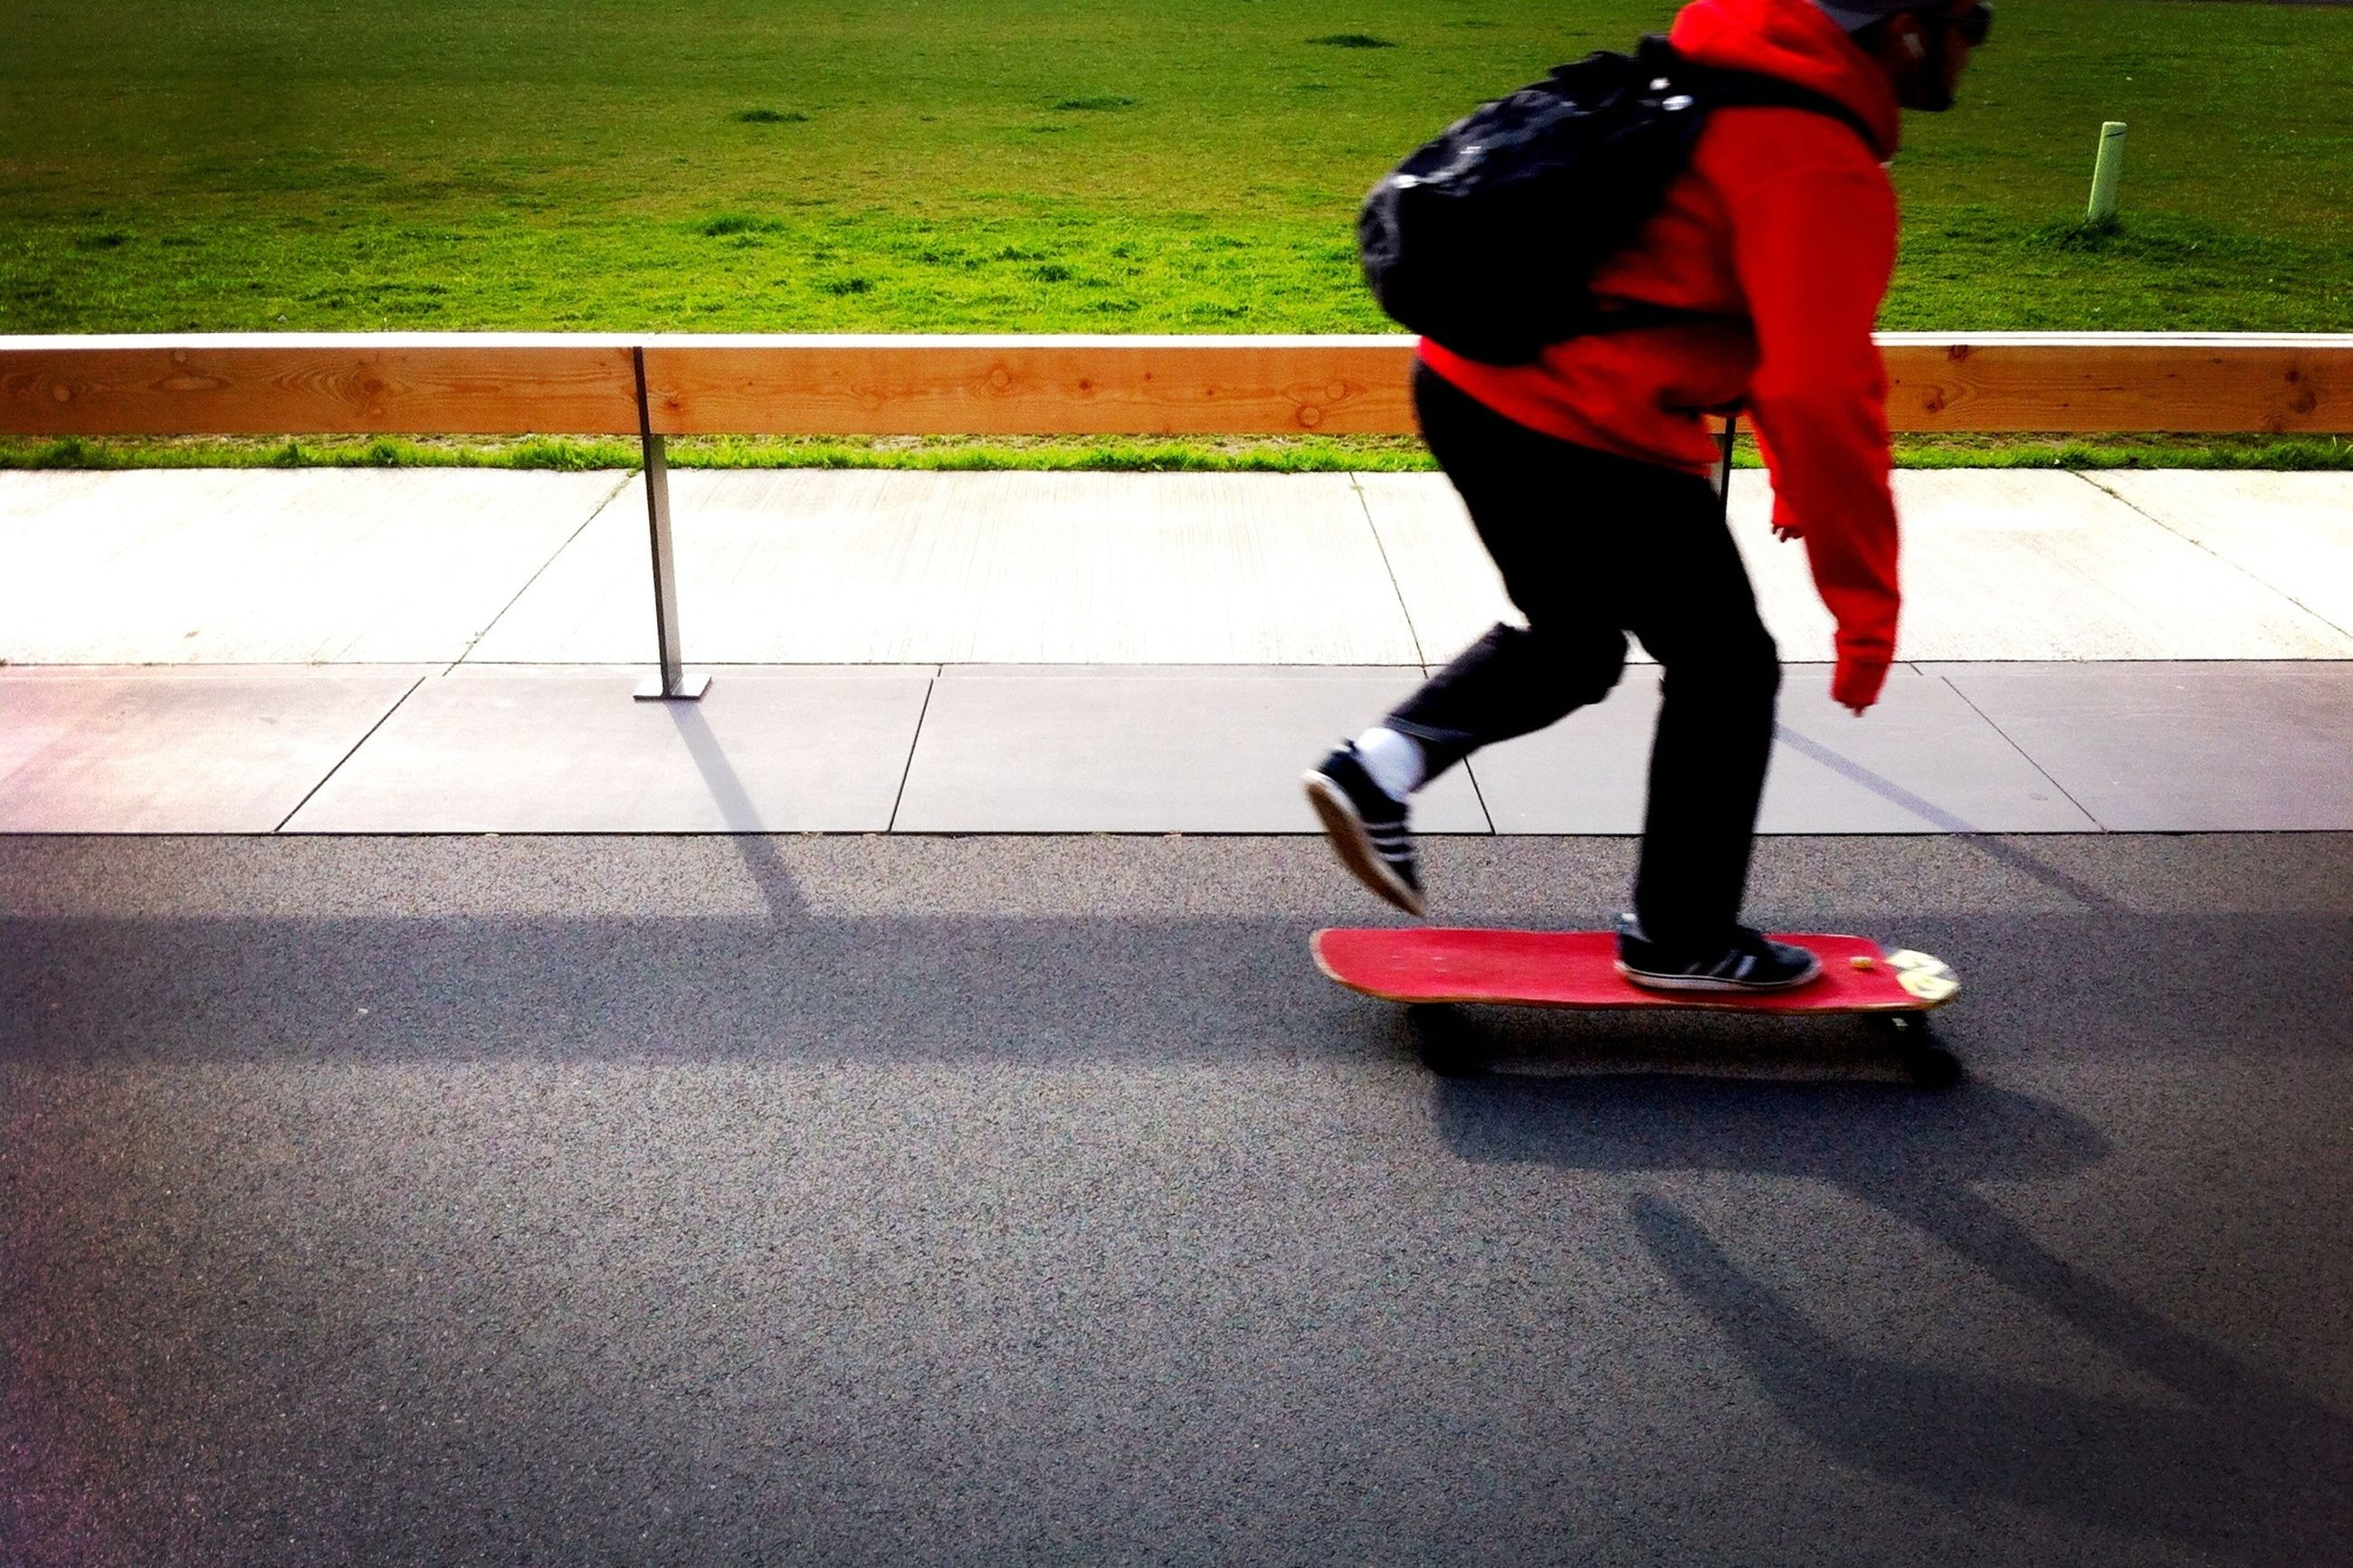 lifestyles, casual clothing, low section, full length, walking, street, men, leisure activity, childhood, rear view, motion, standing, person, red, on the move, skateboard, skateboarding, road